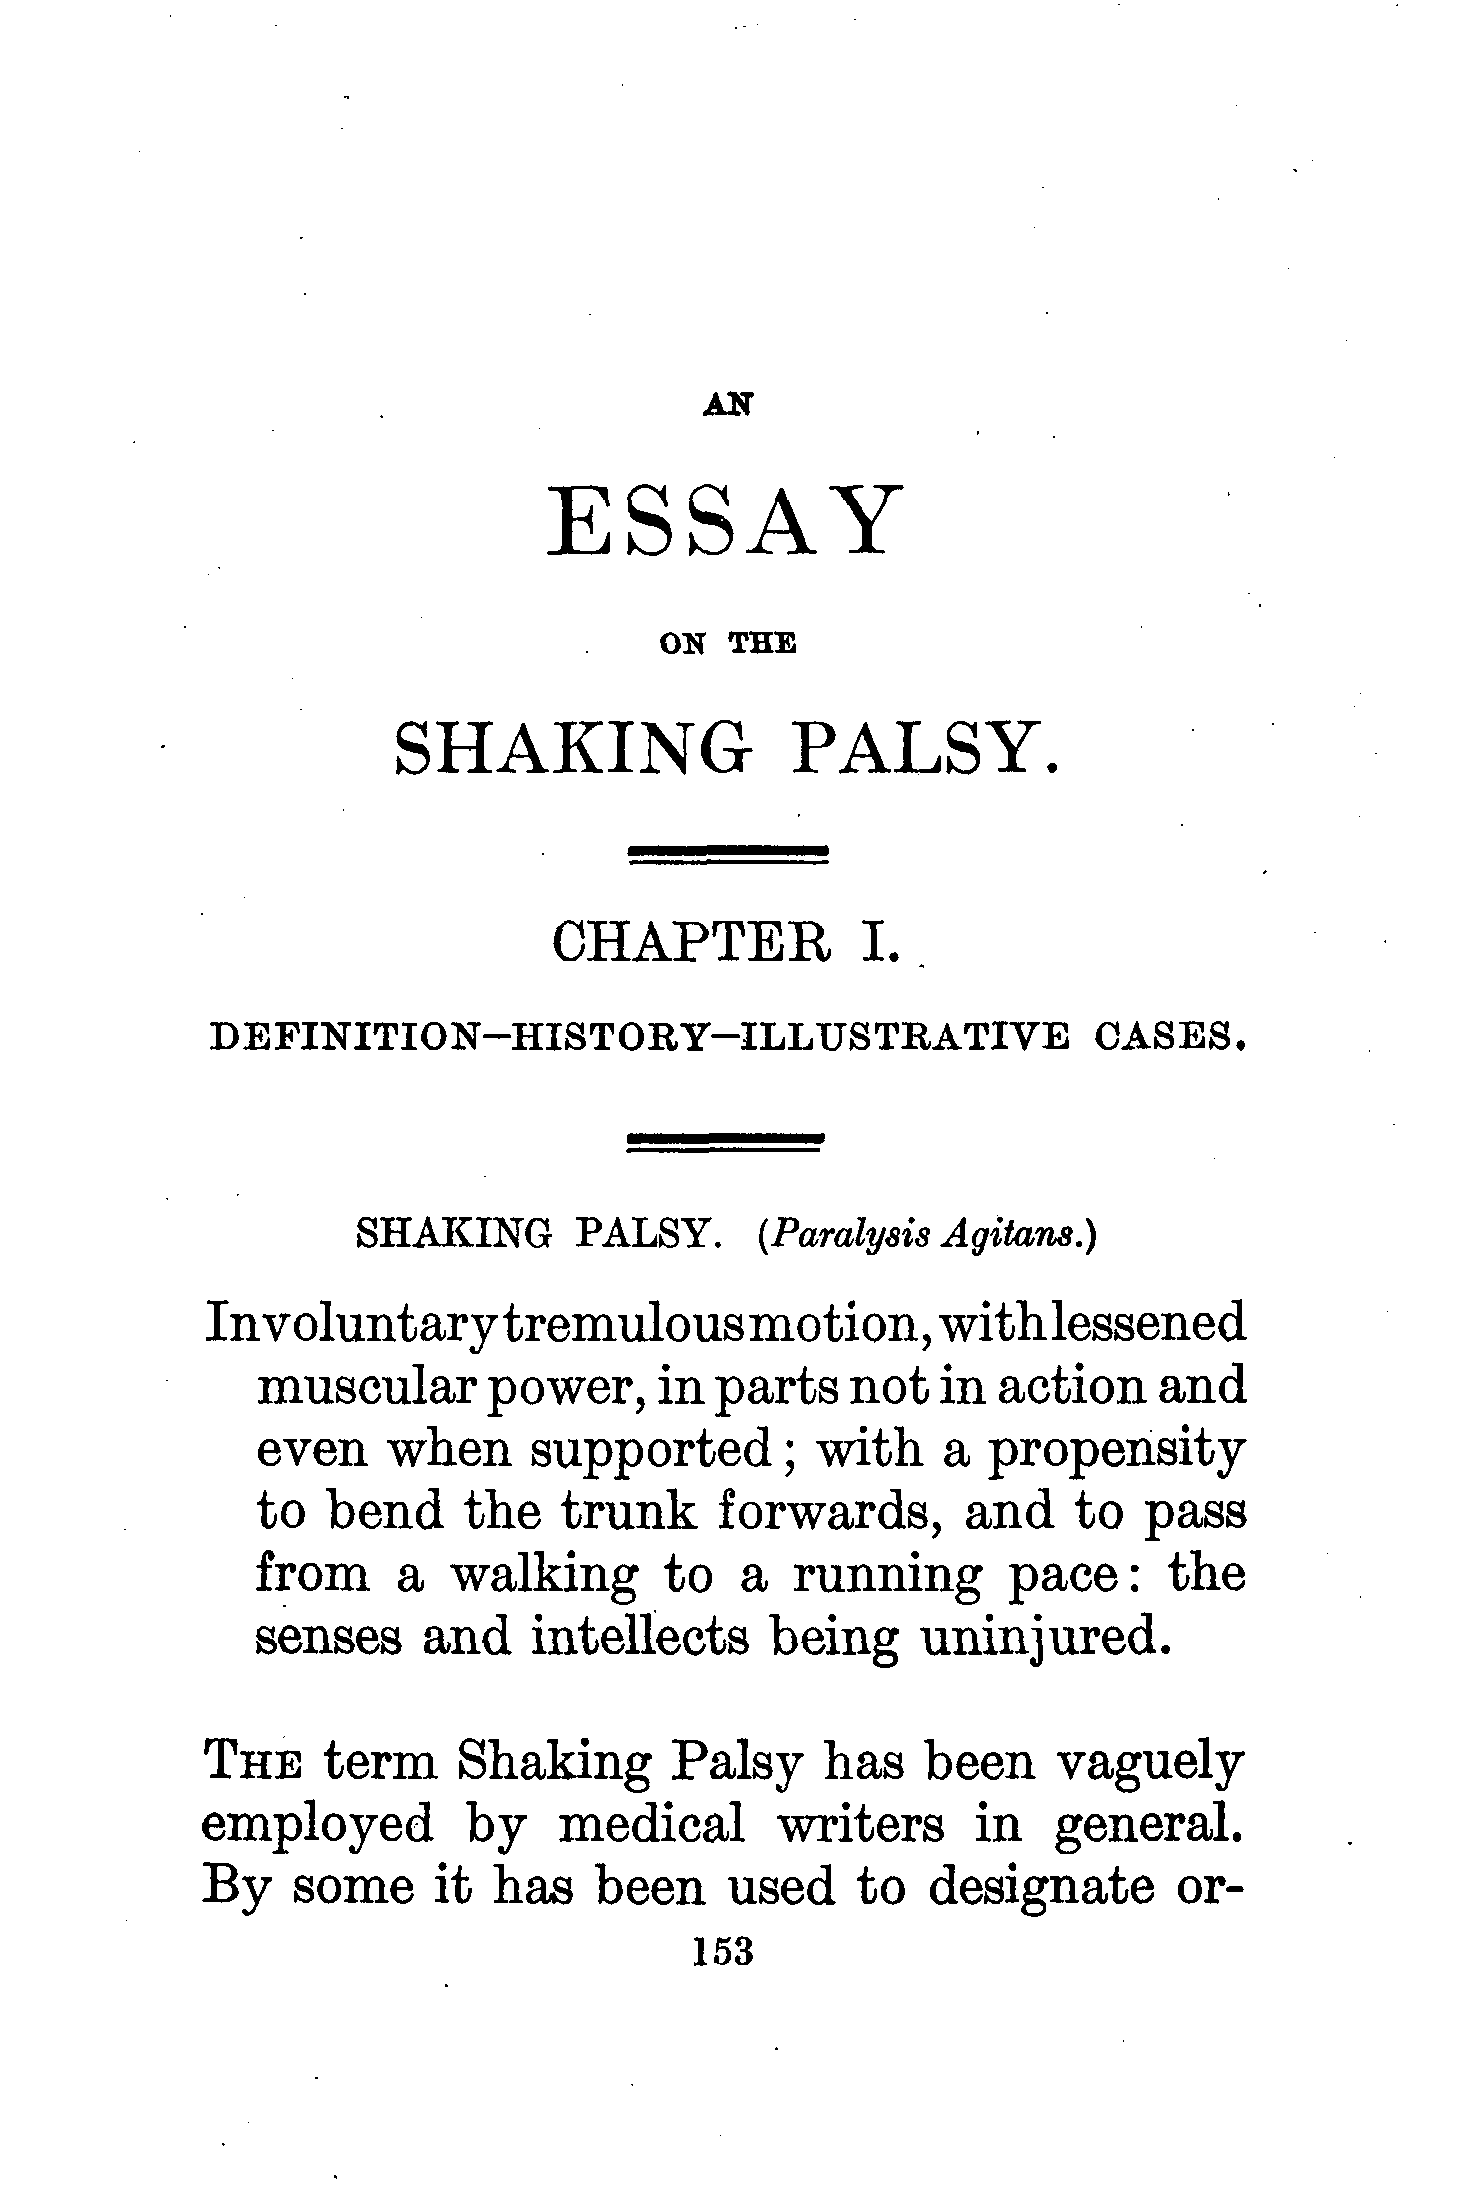 003 First Essay Parkinson2c An On The Shaking Palsy 28first Page29 Rare Day At University Nietzsche Week Full